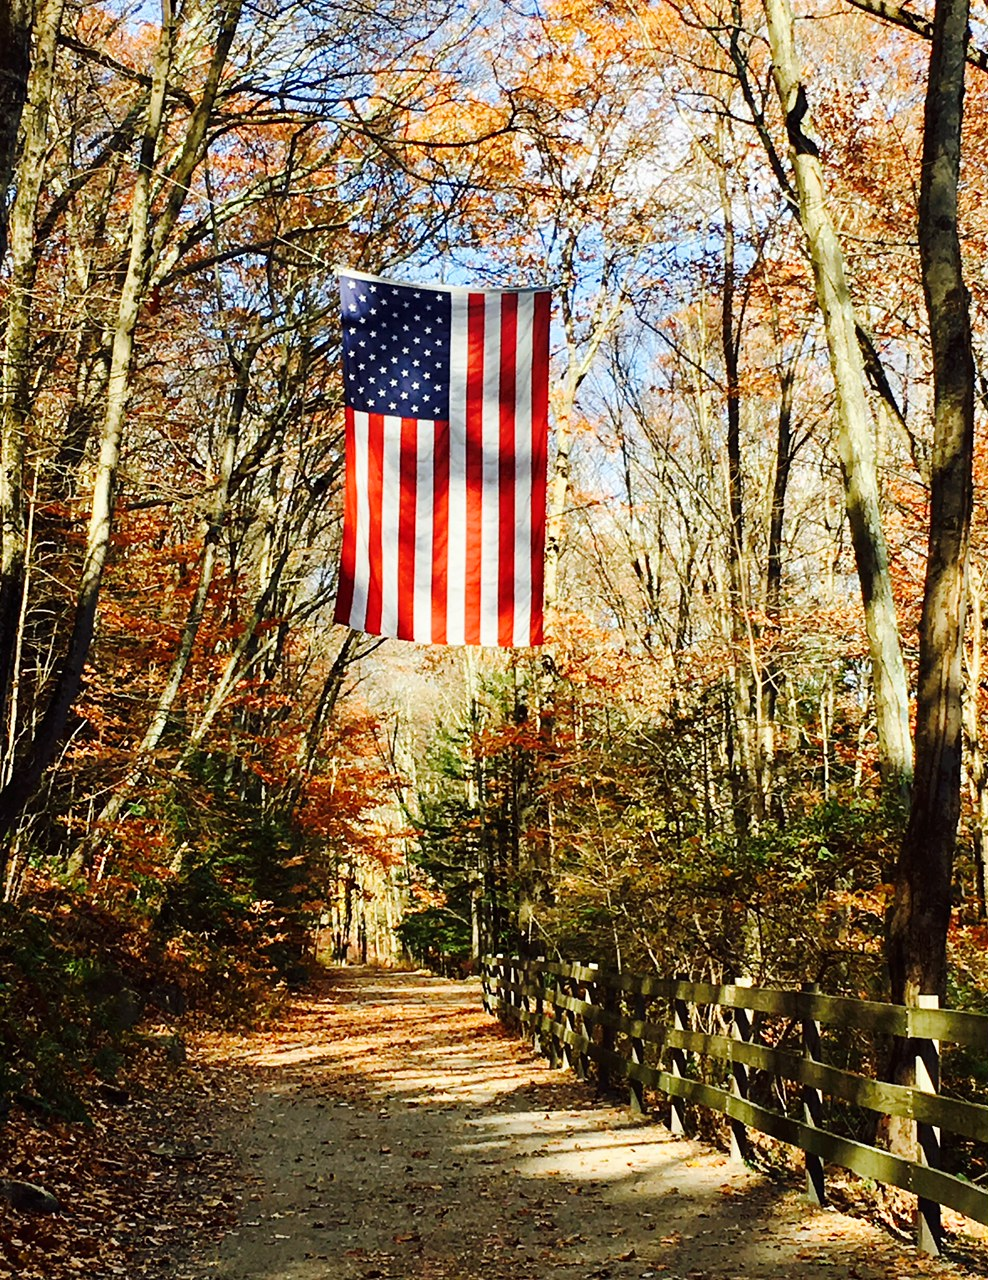 2 years ago - A Veteran's Day ramble with Brian & Leo on the Pequonnock River Trail in Trumbull, CT.